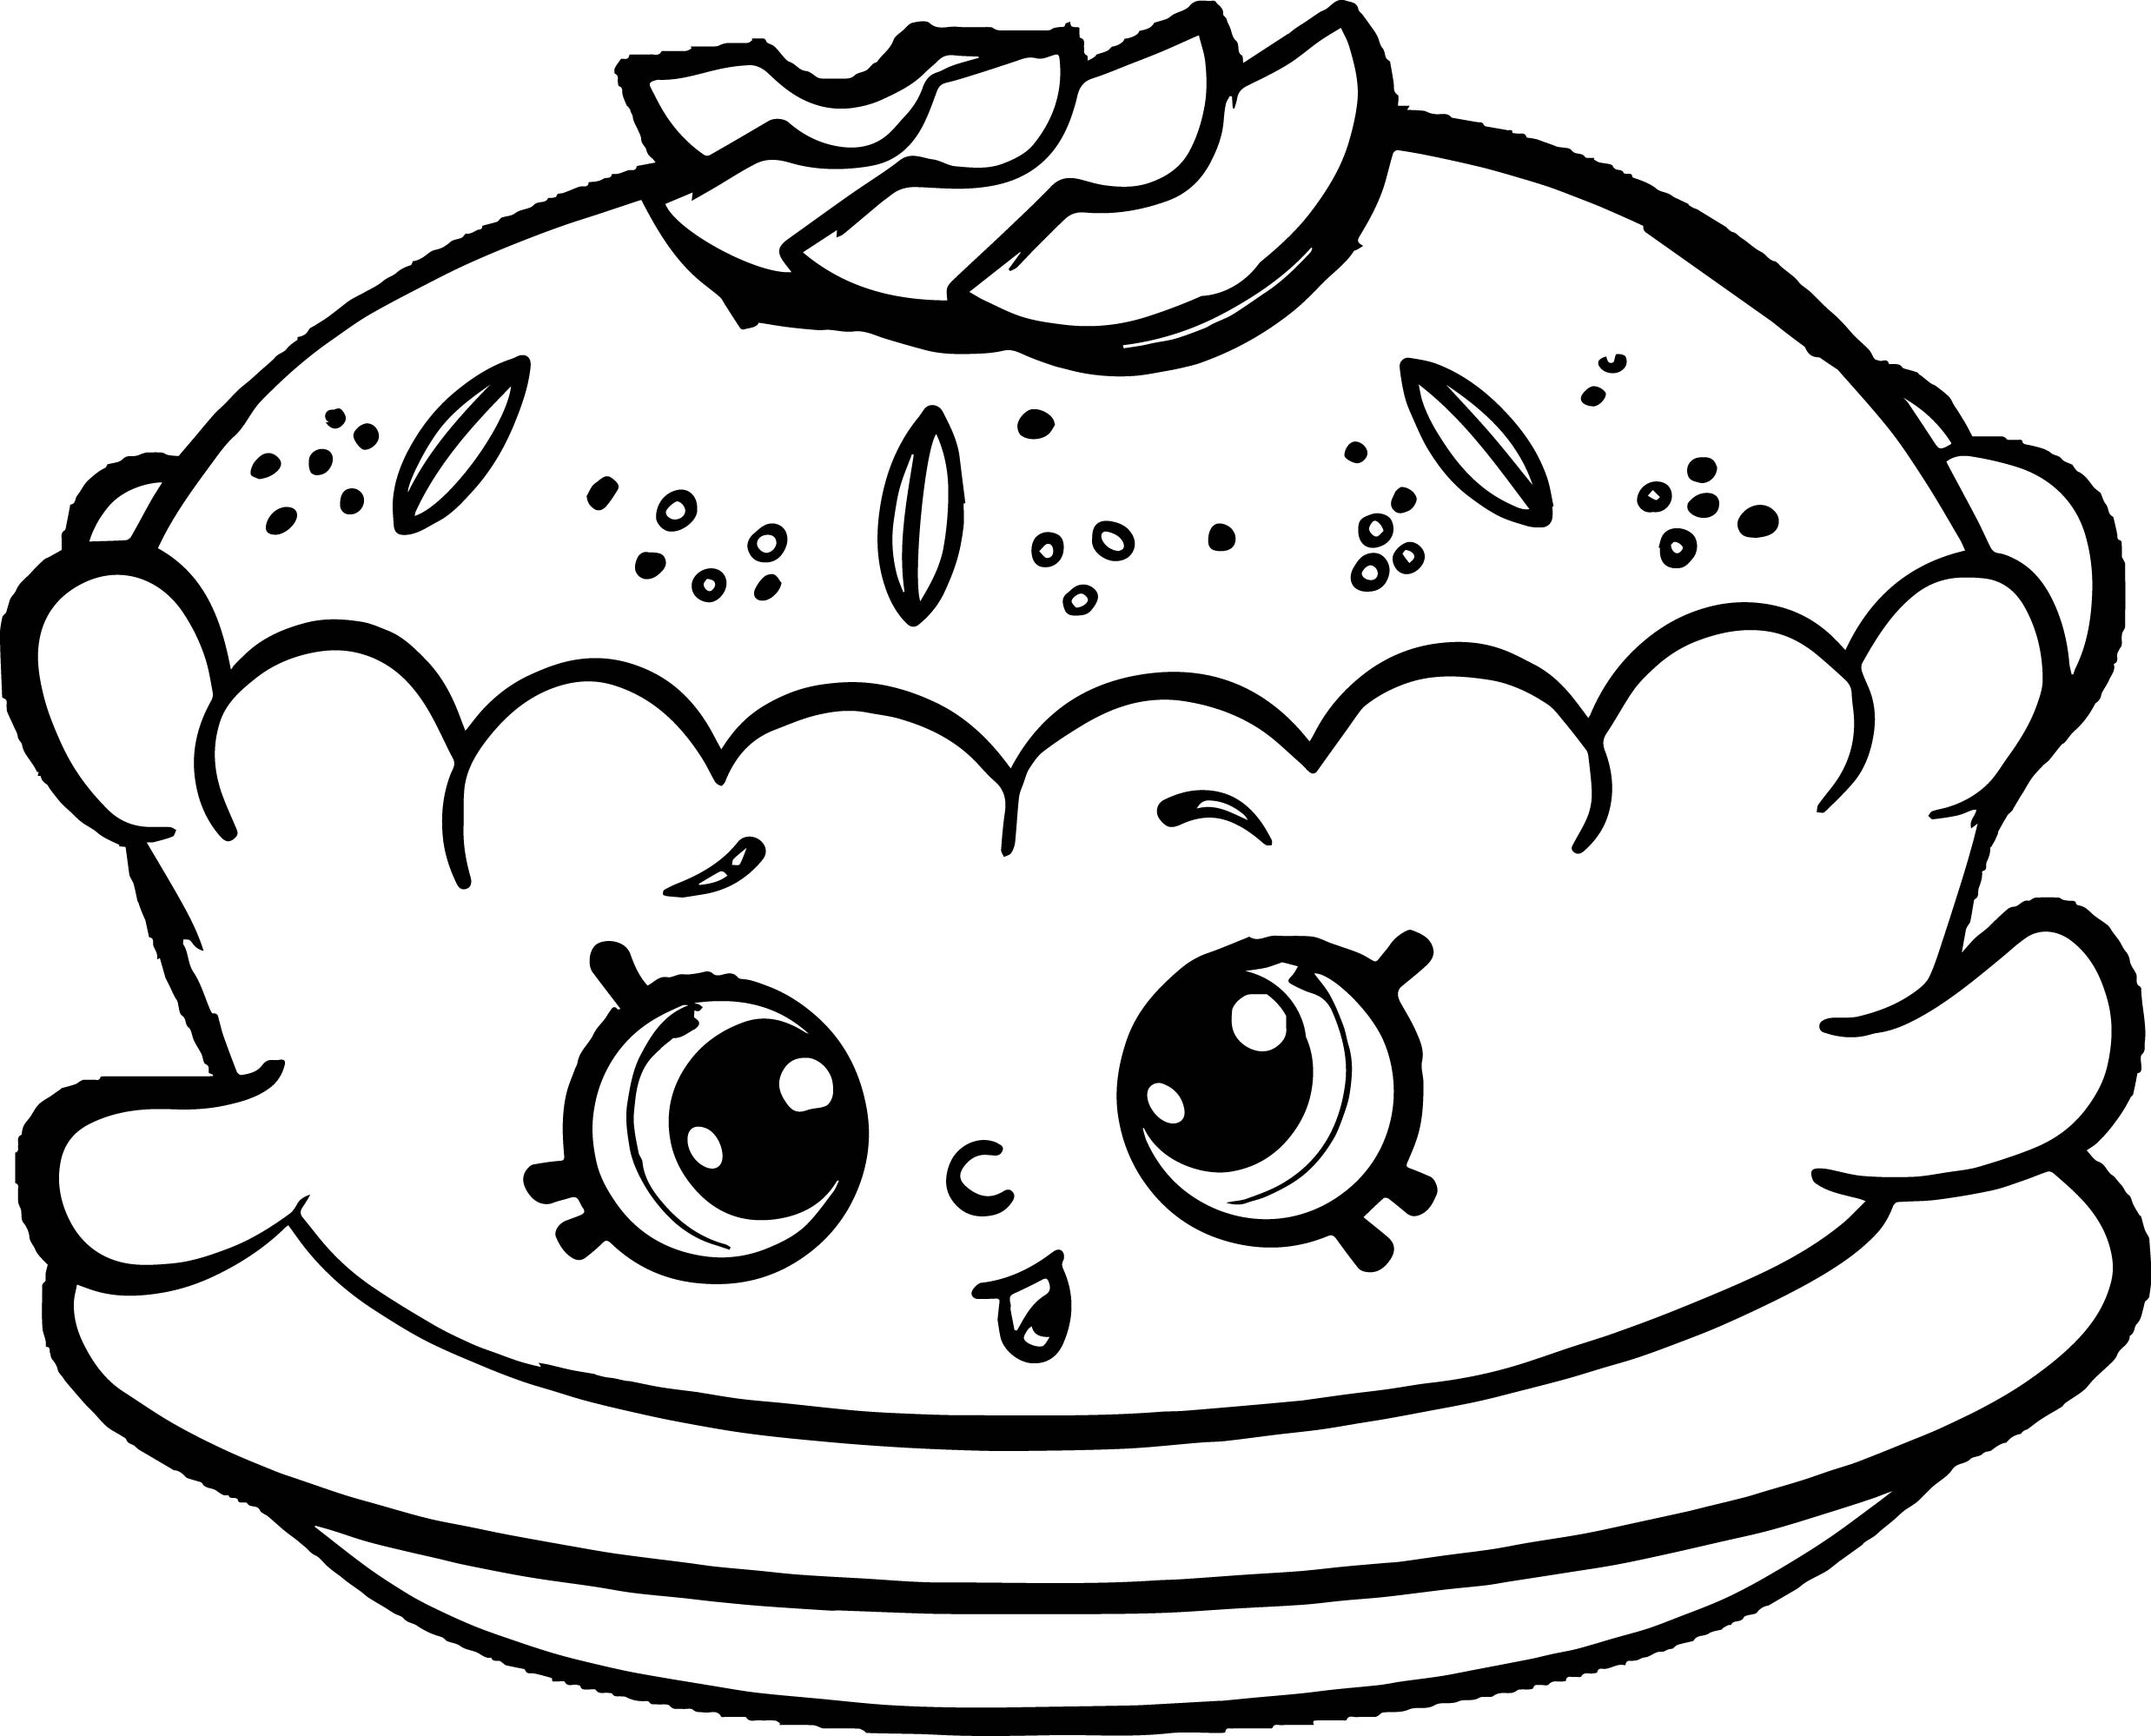 Coloring Pages Apples A Is For Apple Coloring Page Twisty